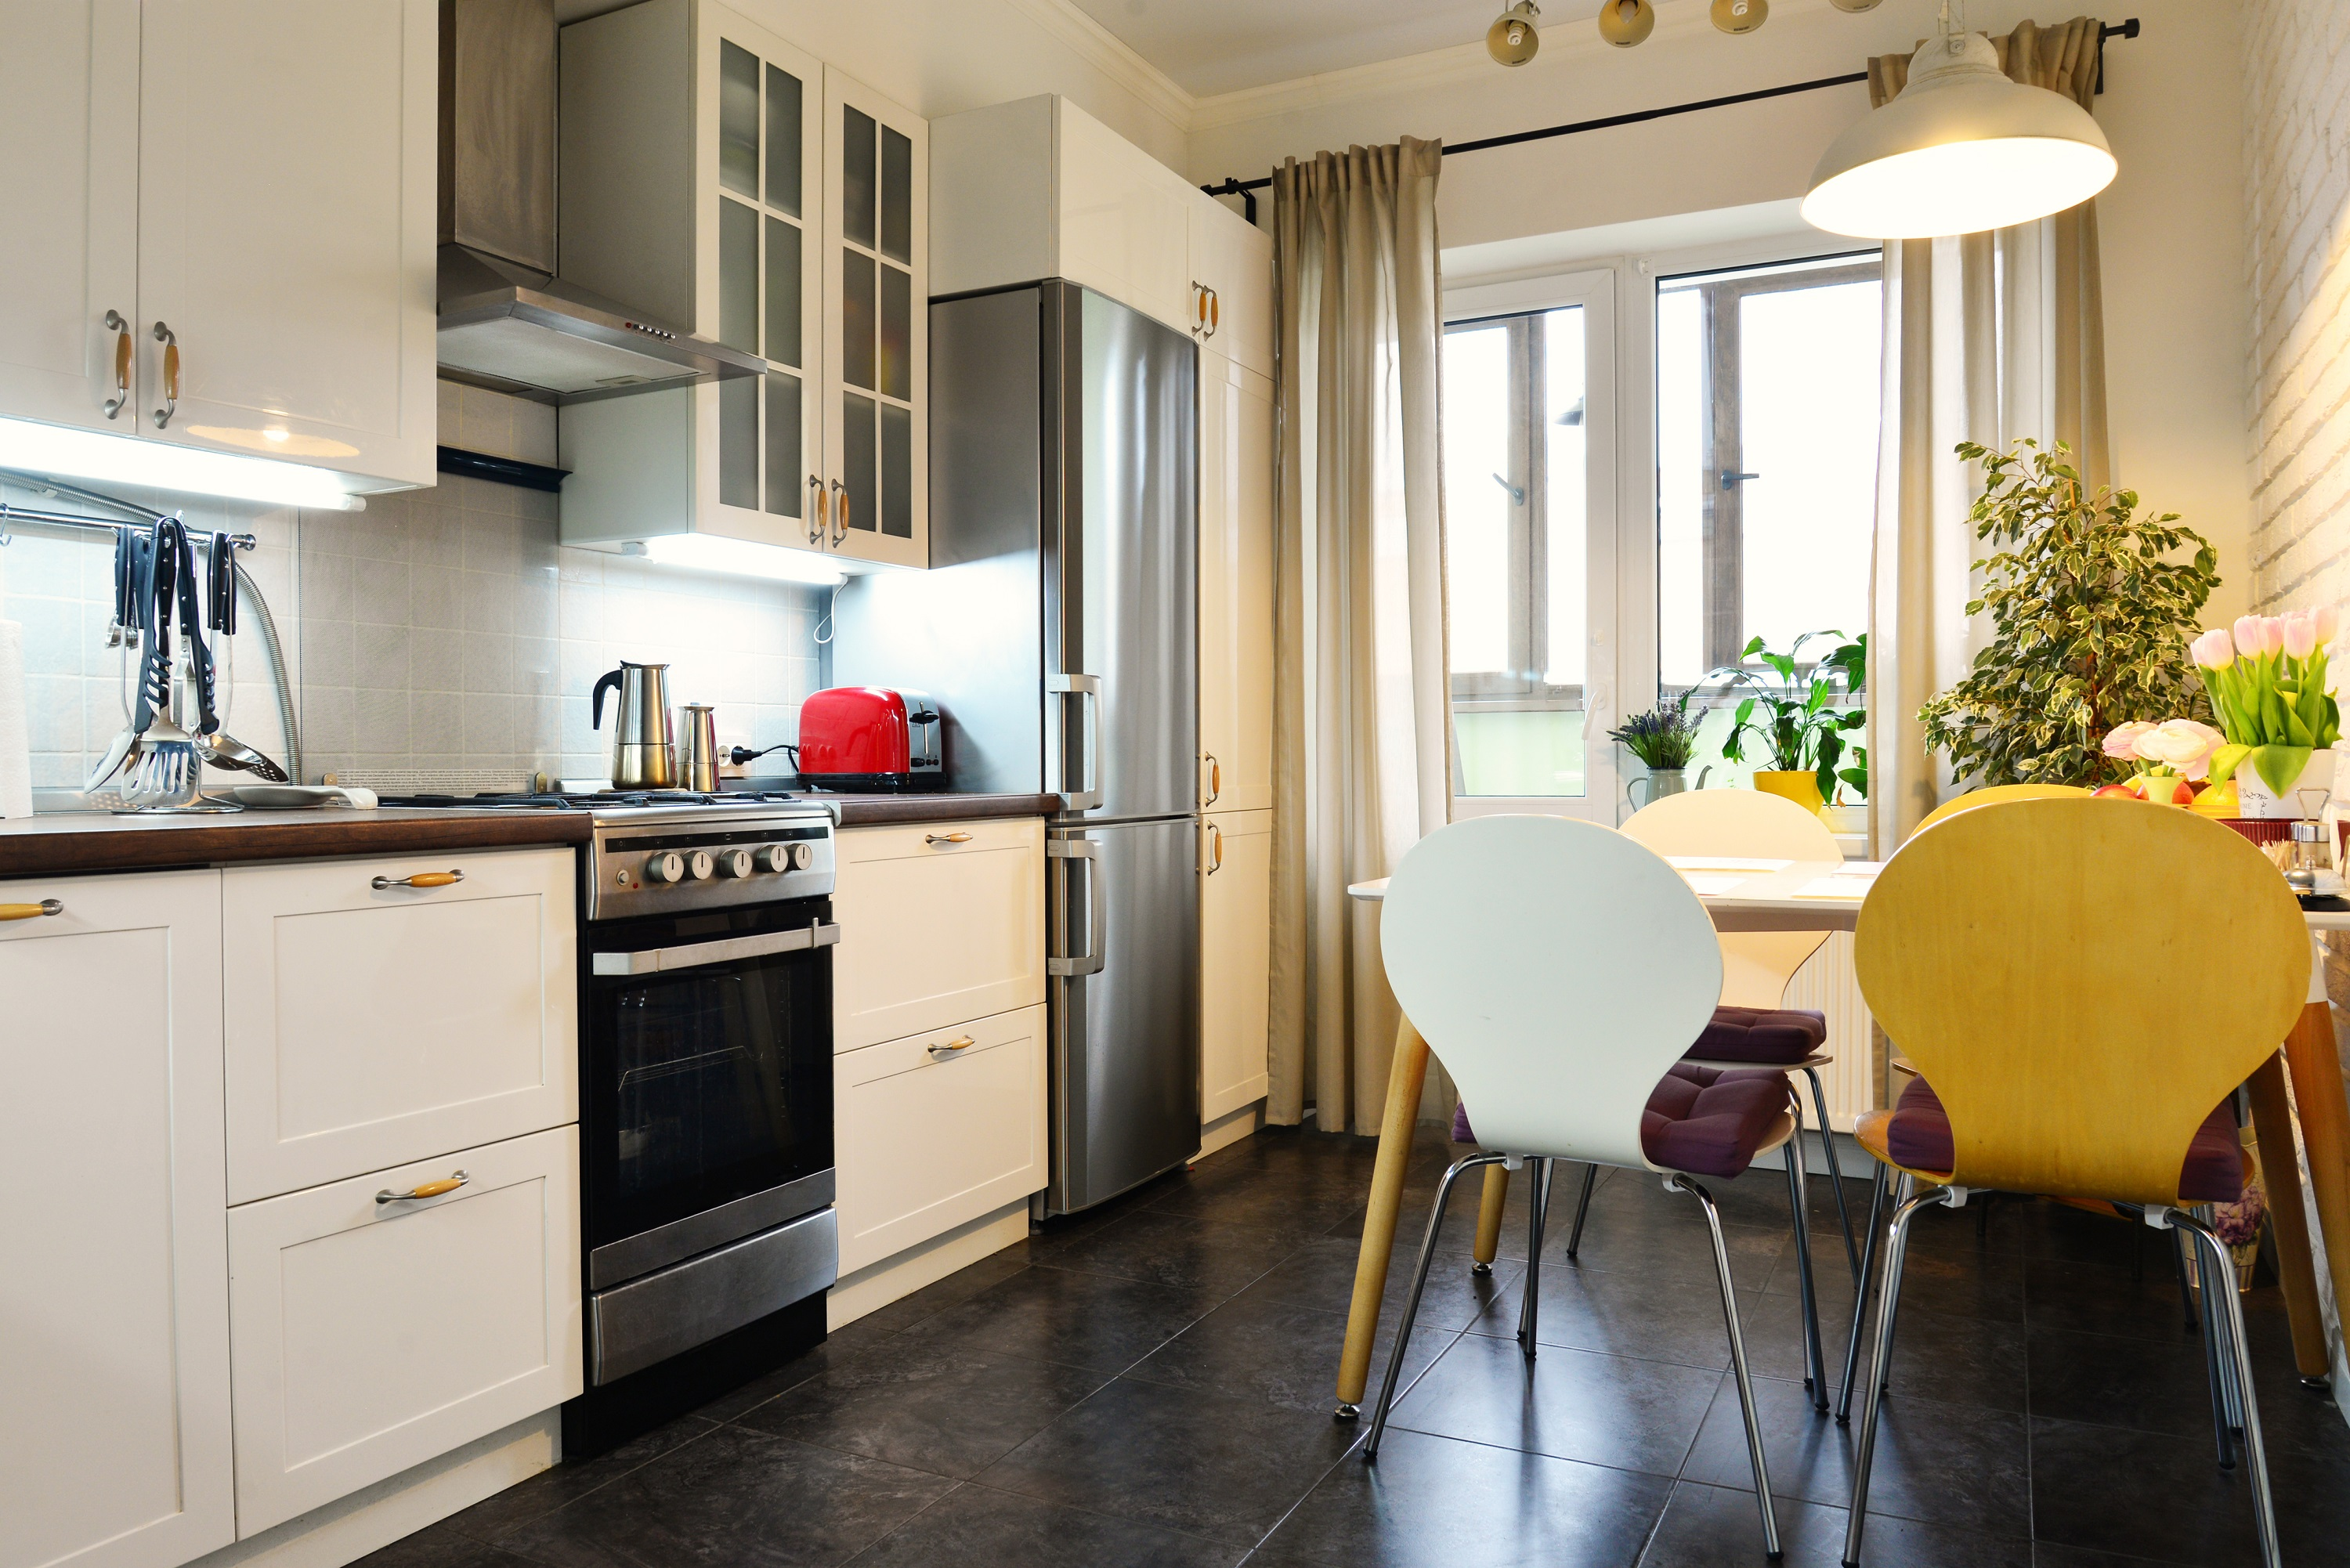 Small Kitchen using natural and artificial light